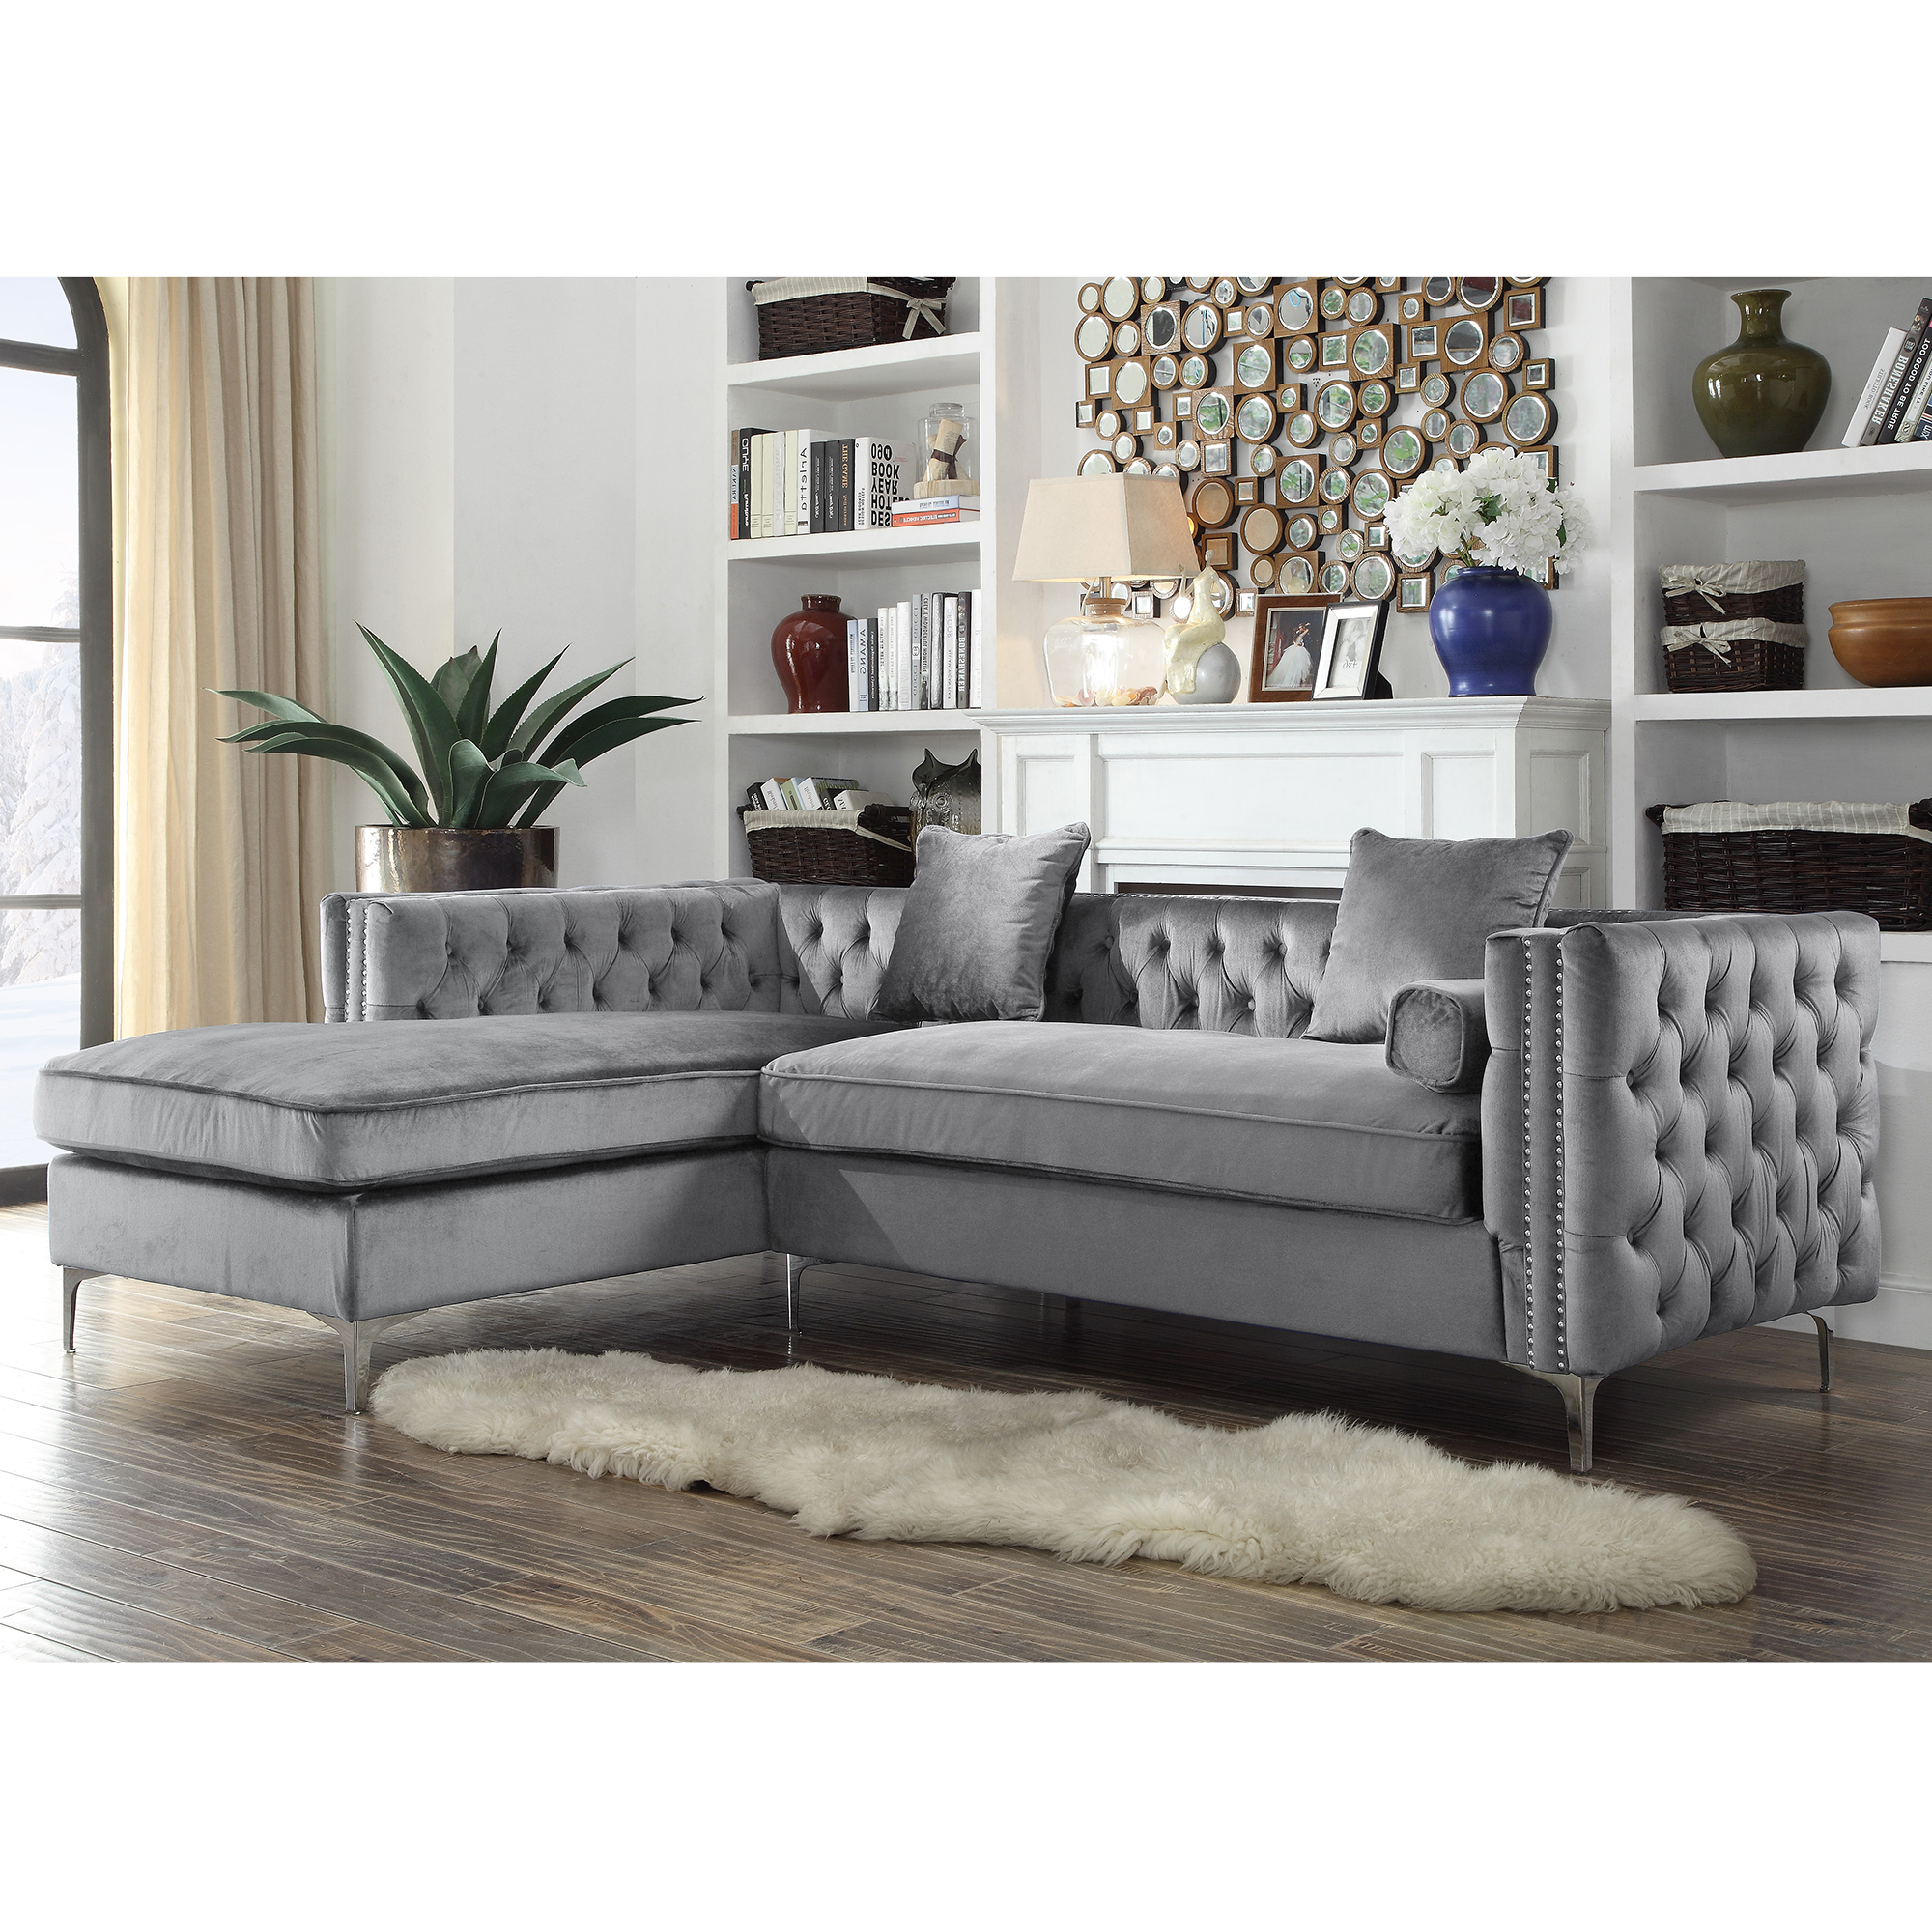 Chic Home Design Iconic Modern Furniture at Dynamic Home Decor